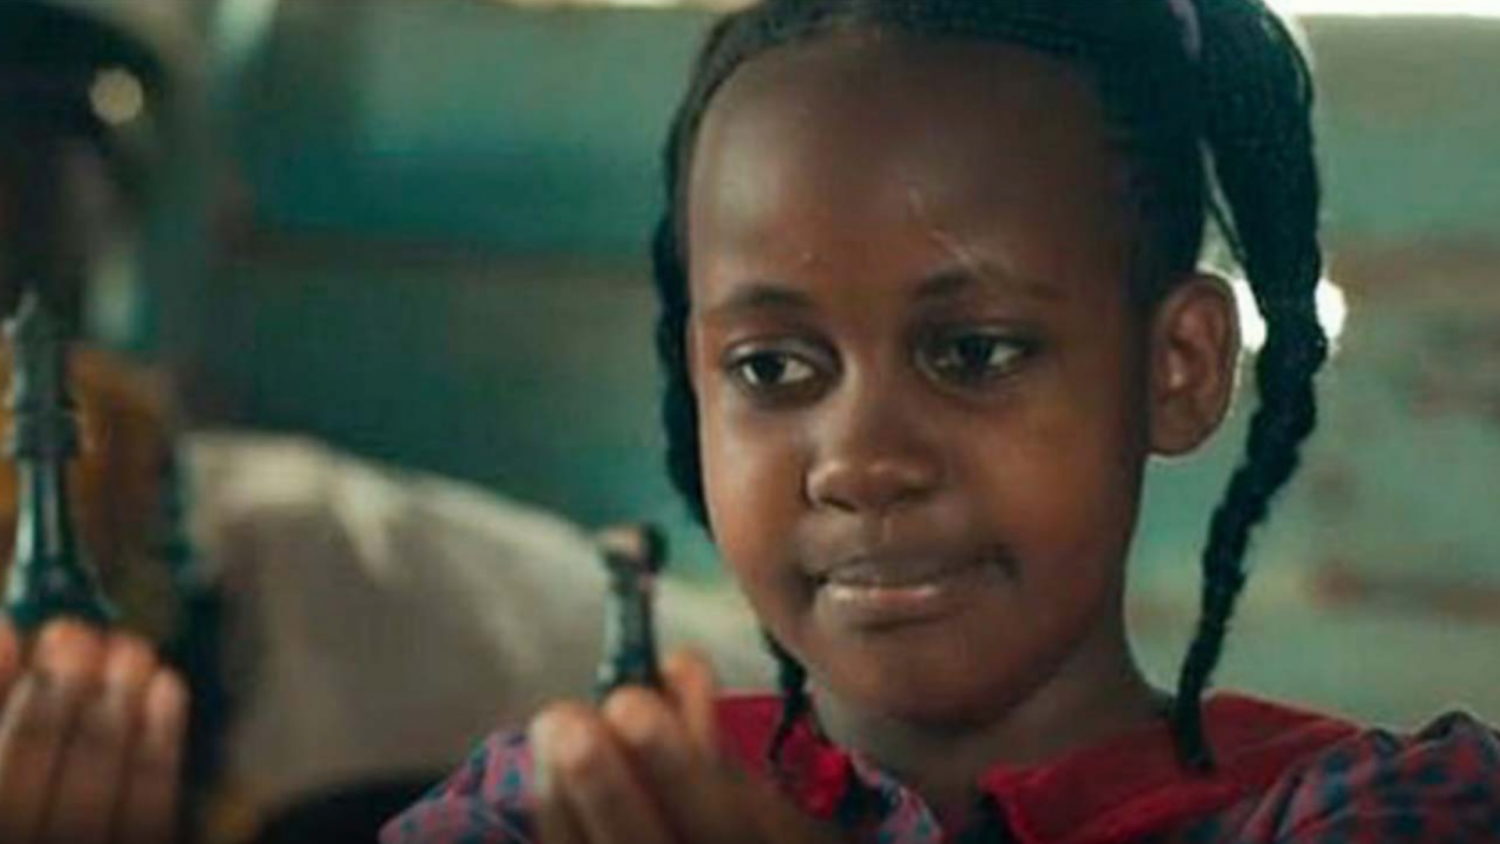 Queen of Katwe Star Nikita Waligwa has died at age 15